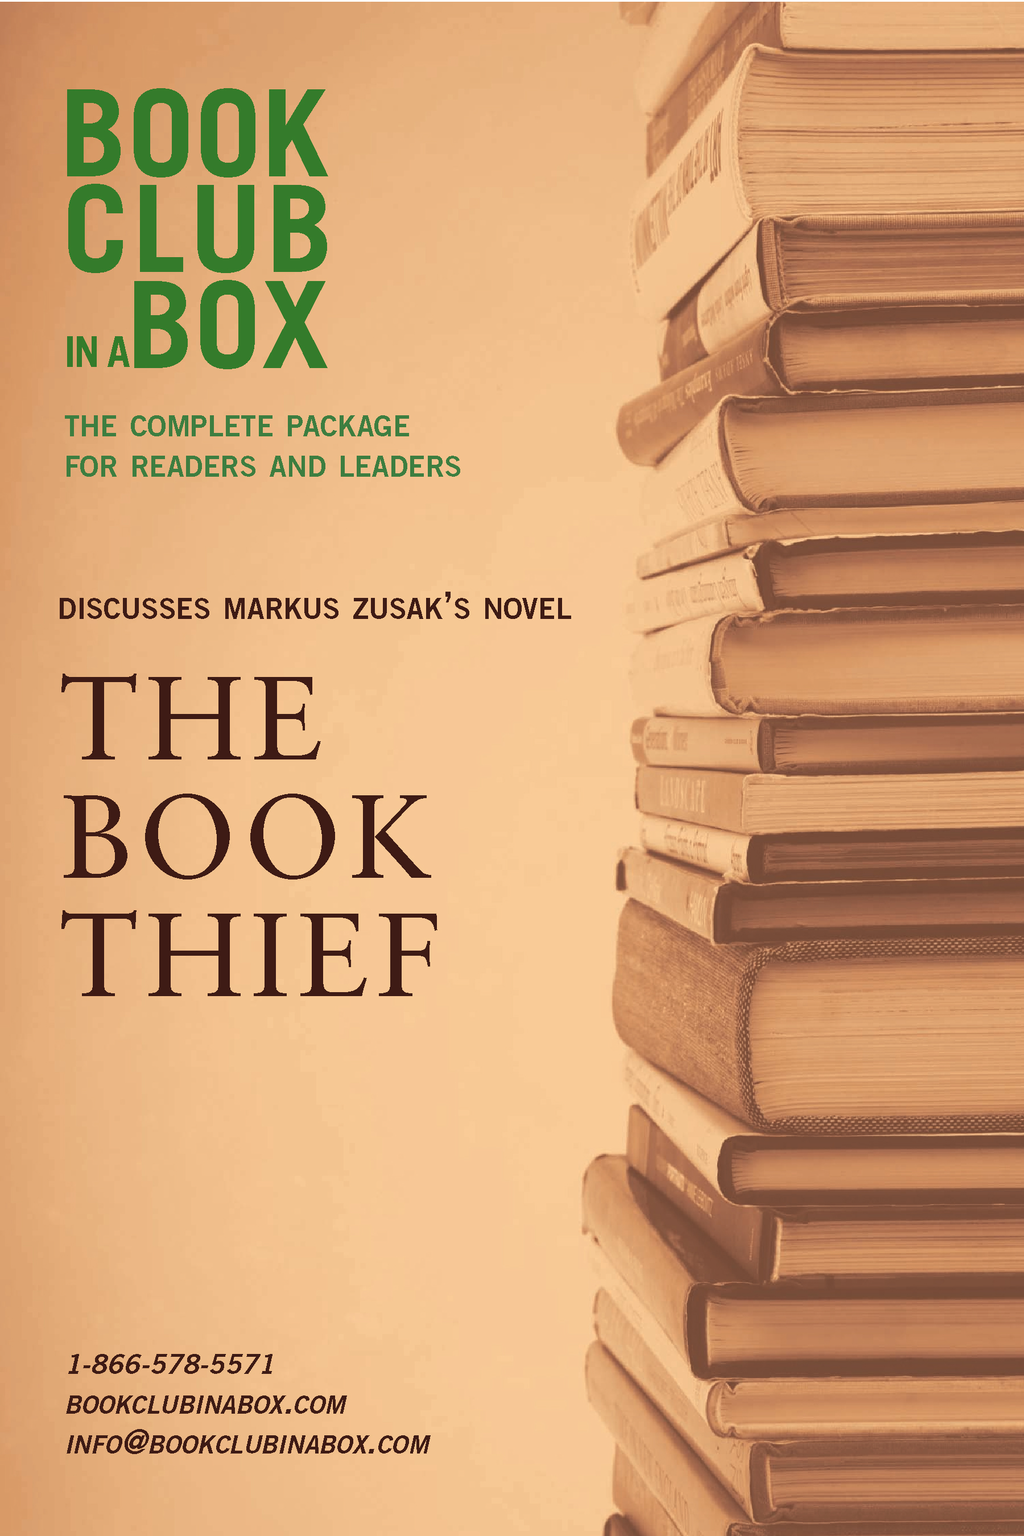 Bookclub-in-a-Box Discusses The Book Thief, by Markus Zusak: The Complete Package for Readers and Leaders